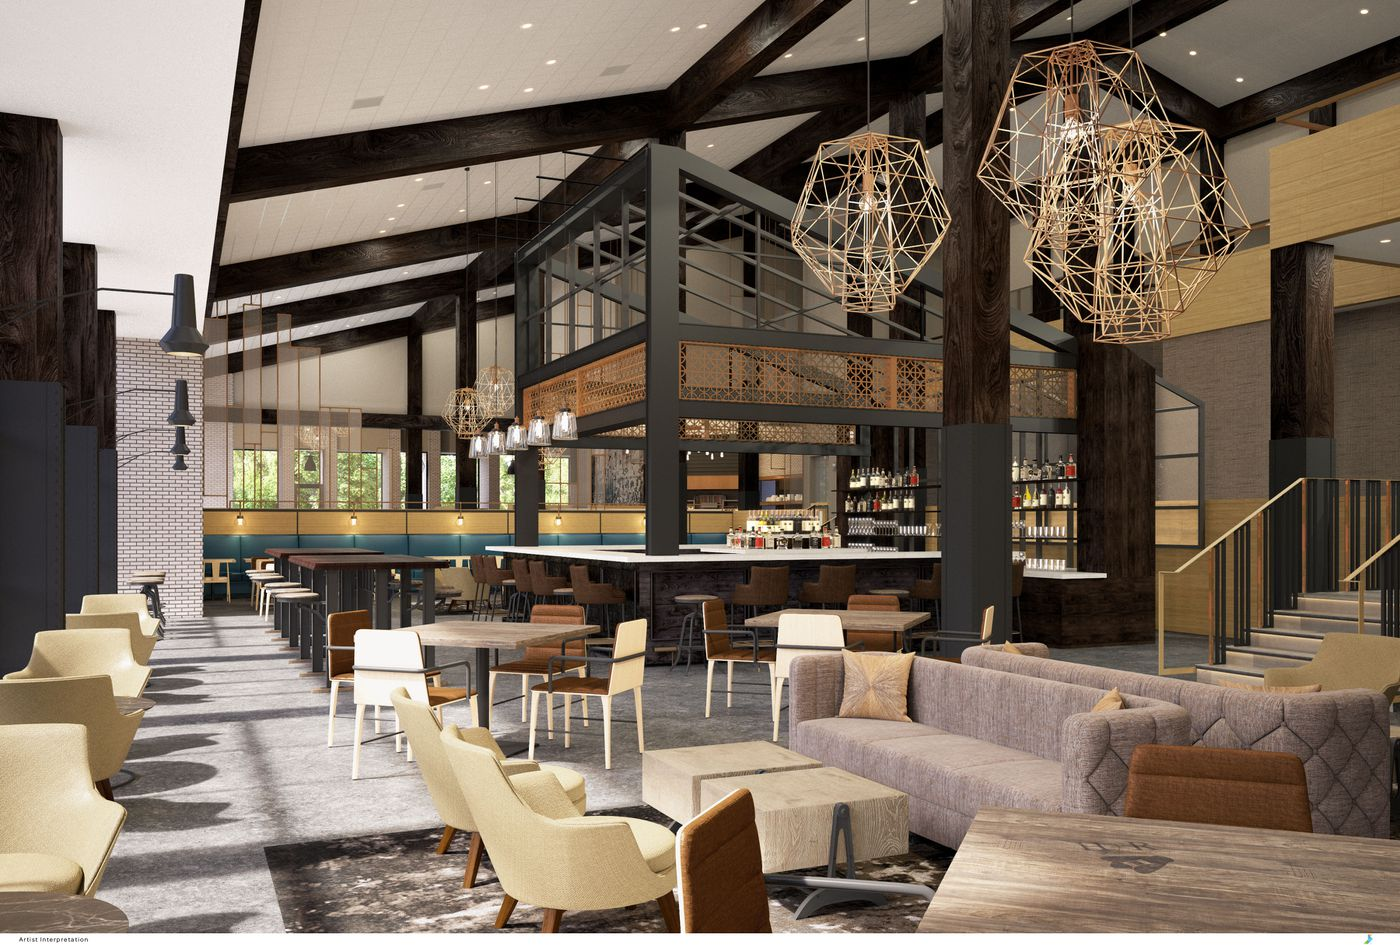 Updates On Upcoming Chicago-Area Restaurants & Bars, Spring 2017